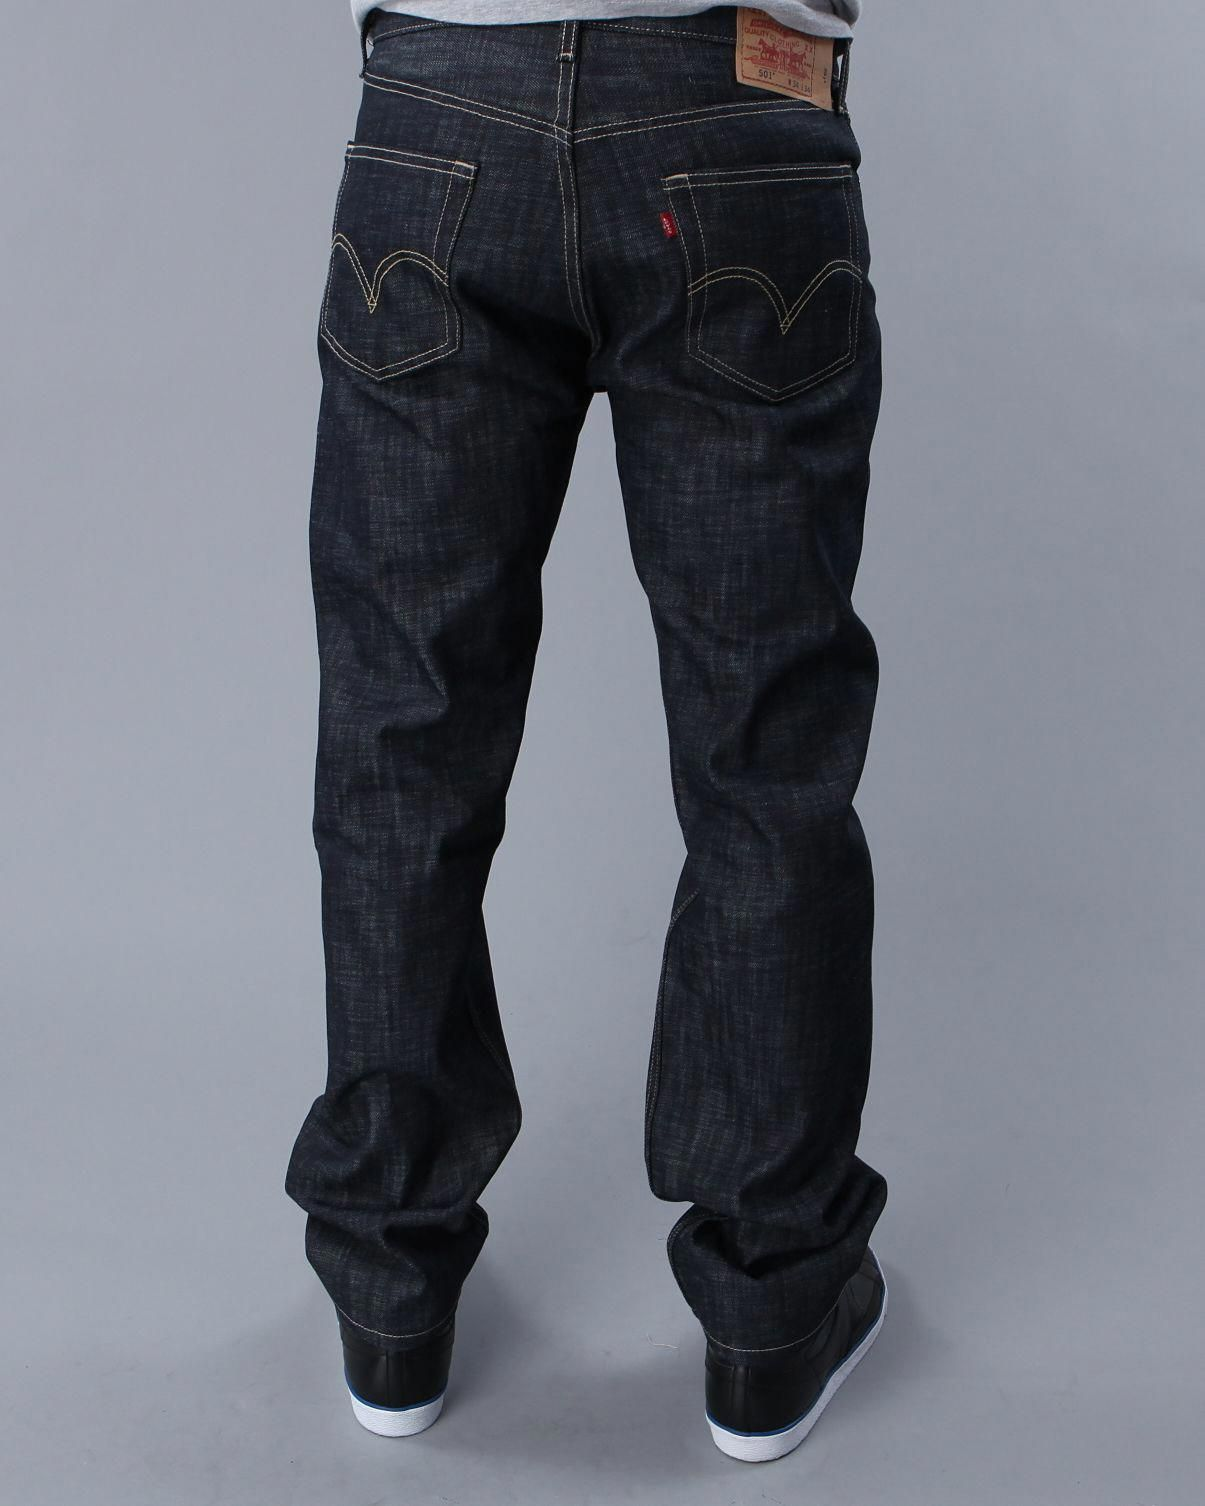 c45660e83d2 Levis 501 shrink to fit Men's jeans. The original waxed cowboy jean. Never  to